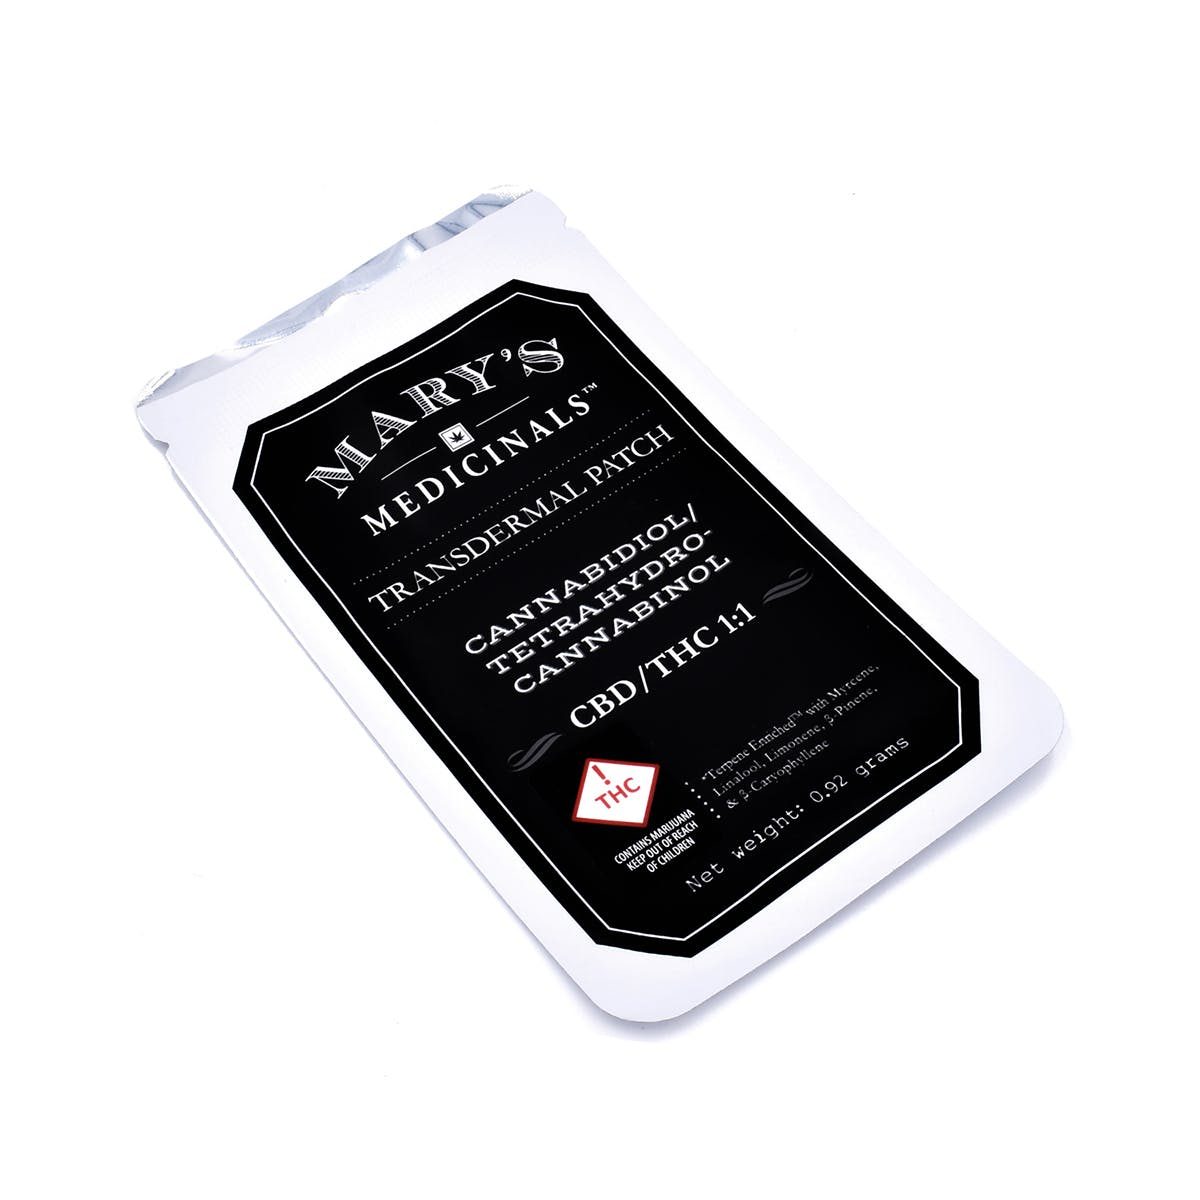 marijuana-dispensaries-champlain-valley-dispensary-vermont-in-burlington-cbd-thc-11-transdermal-patch-2c-10mg-rec